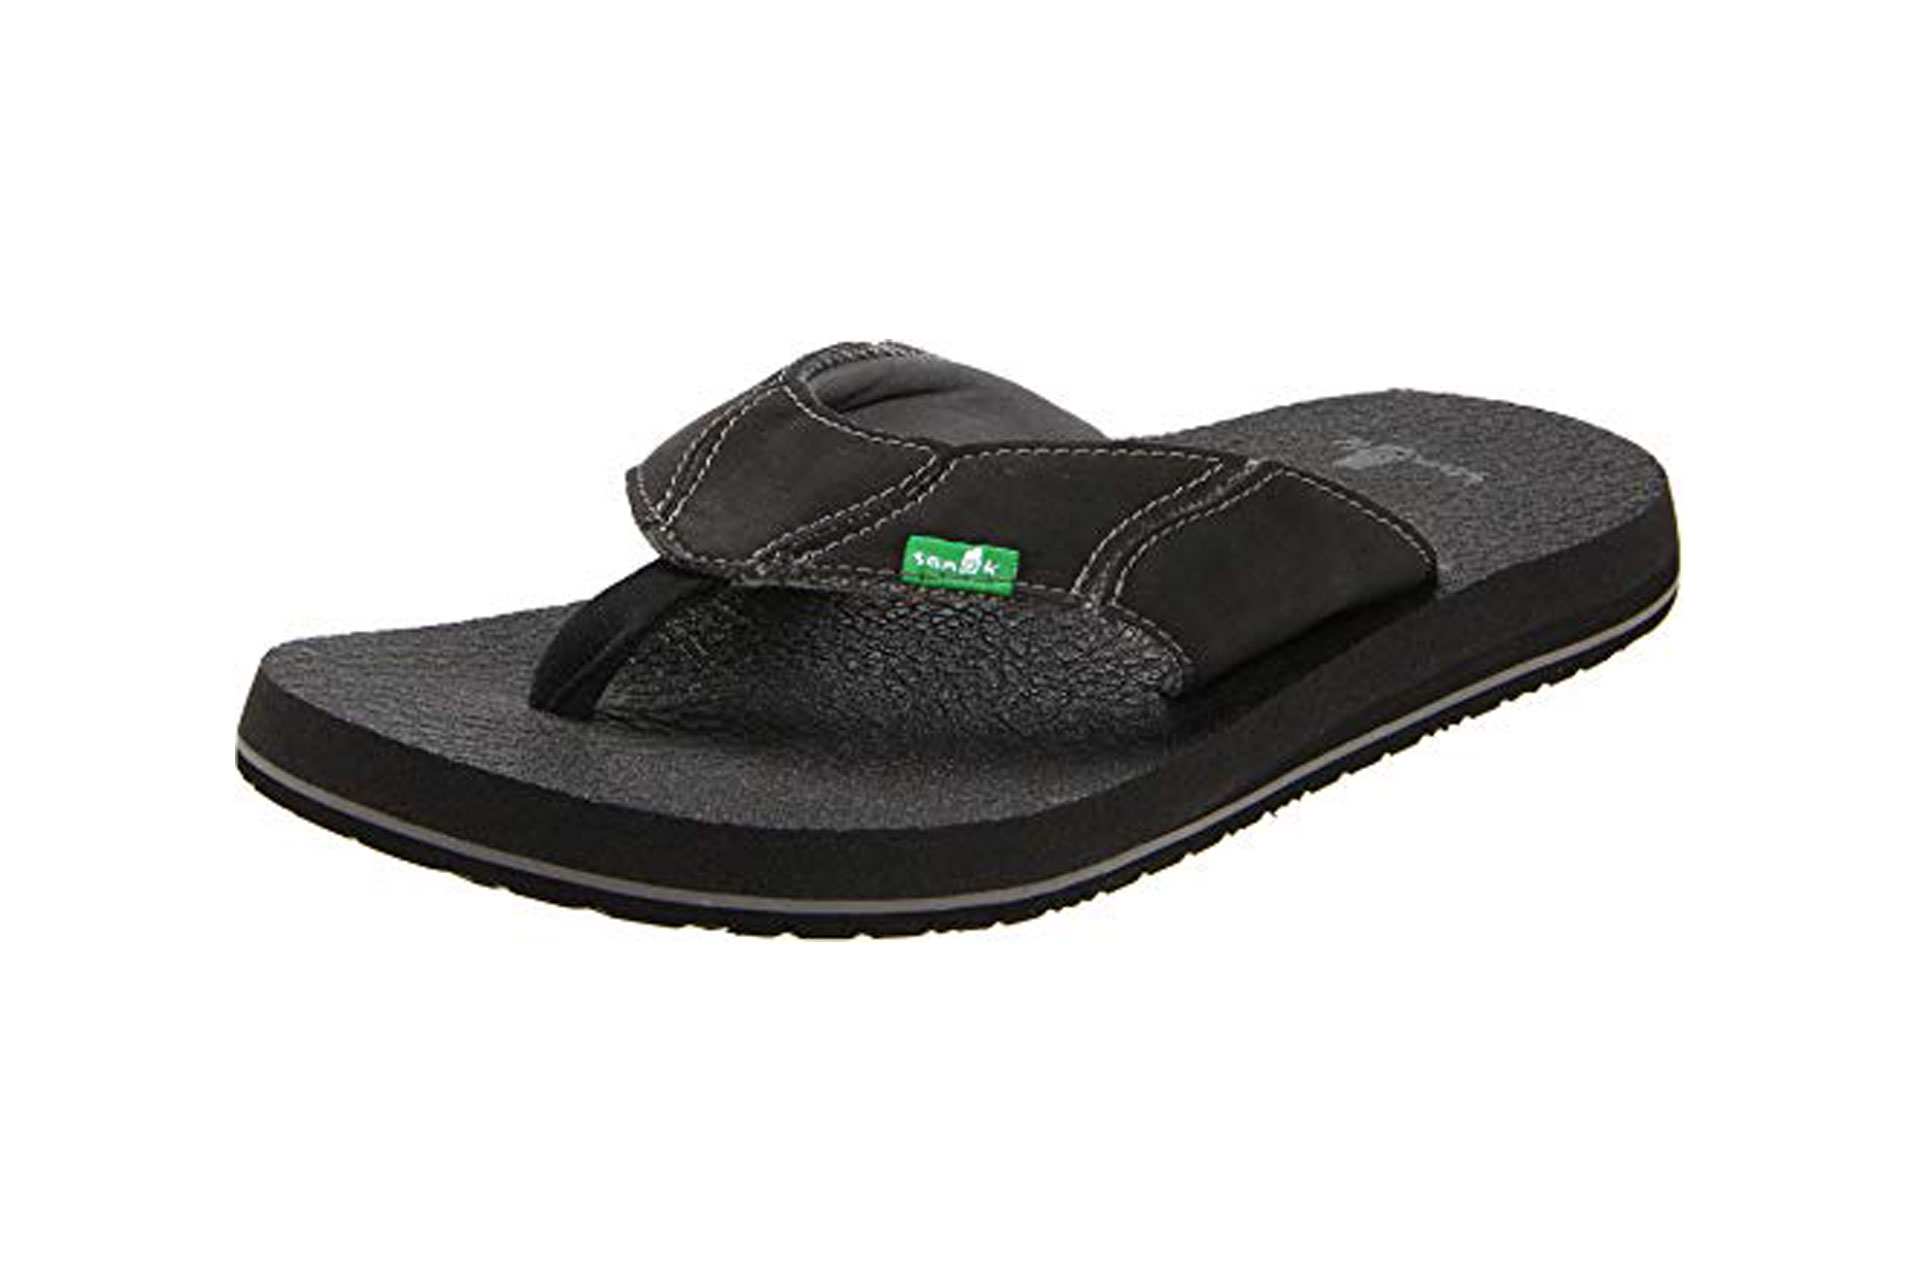 Sanuk Mens Flip Flops; Courtesy of Amazon